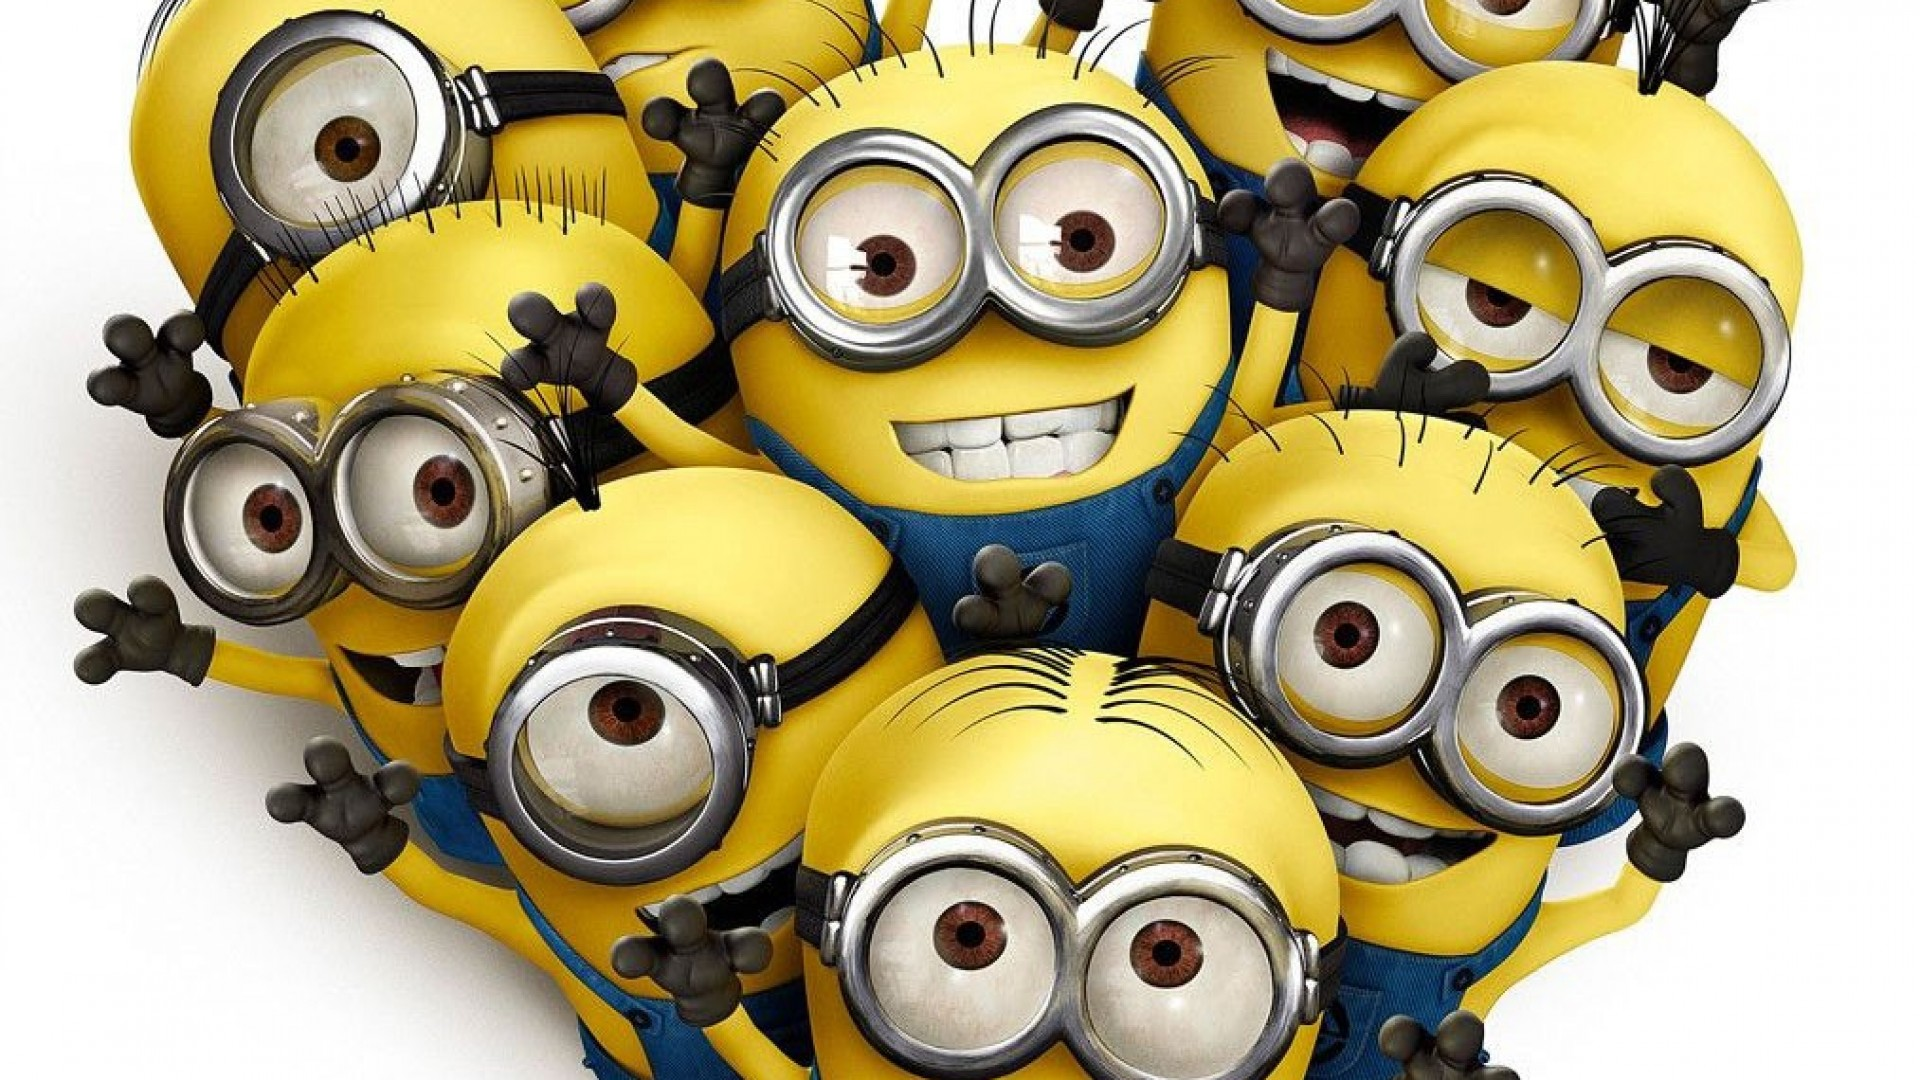 55 cute minion wallpapers hd for desktop